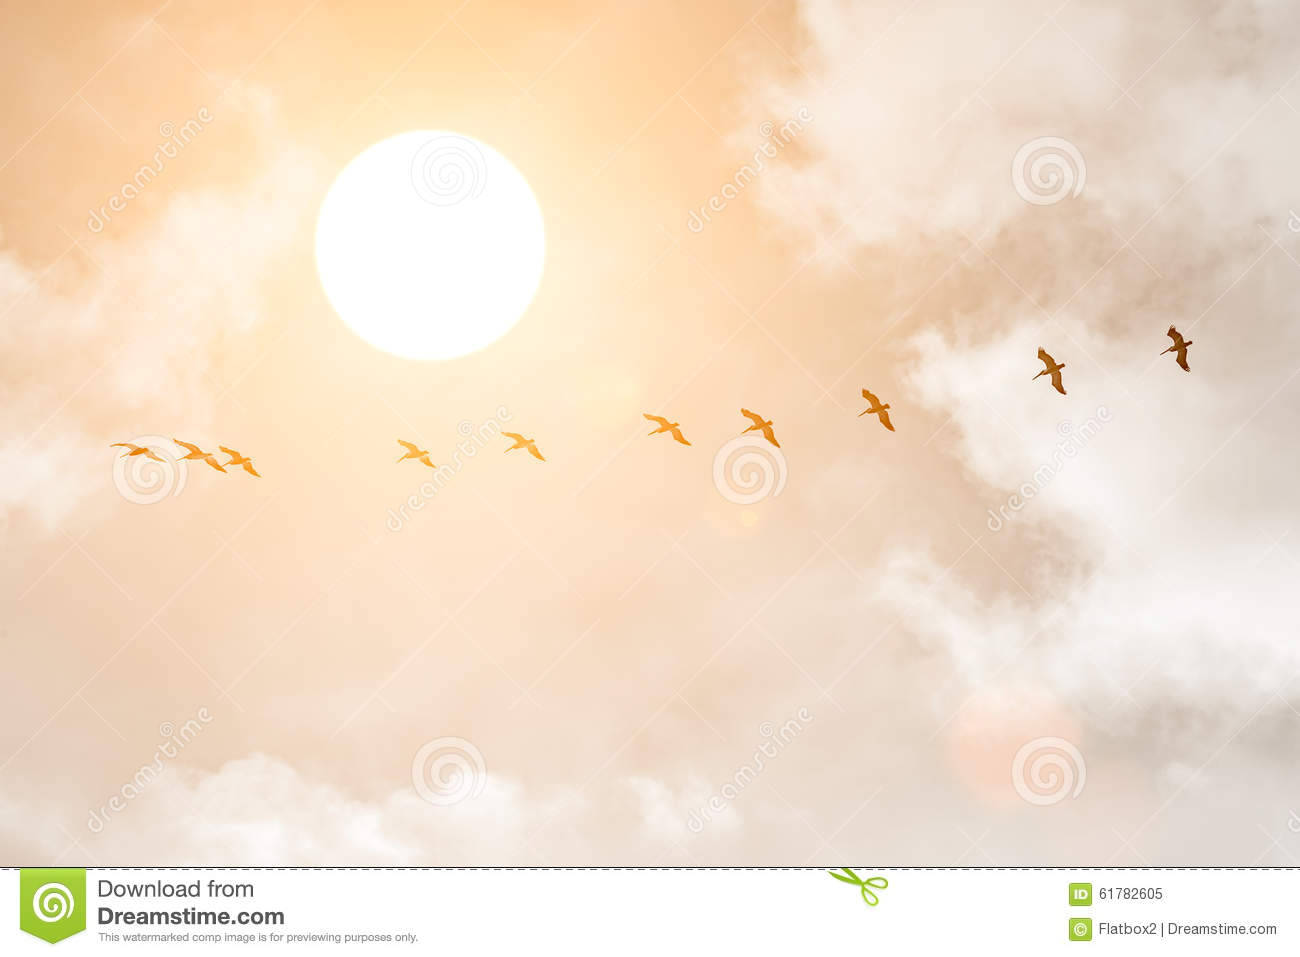 Silhouettes of Great White Pelicans at sunset